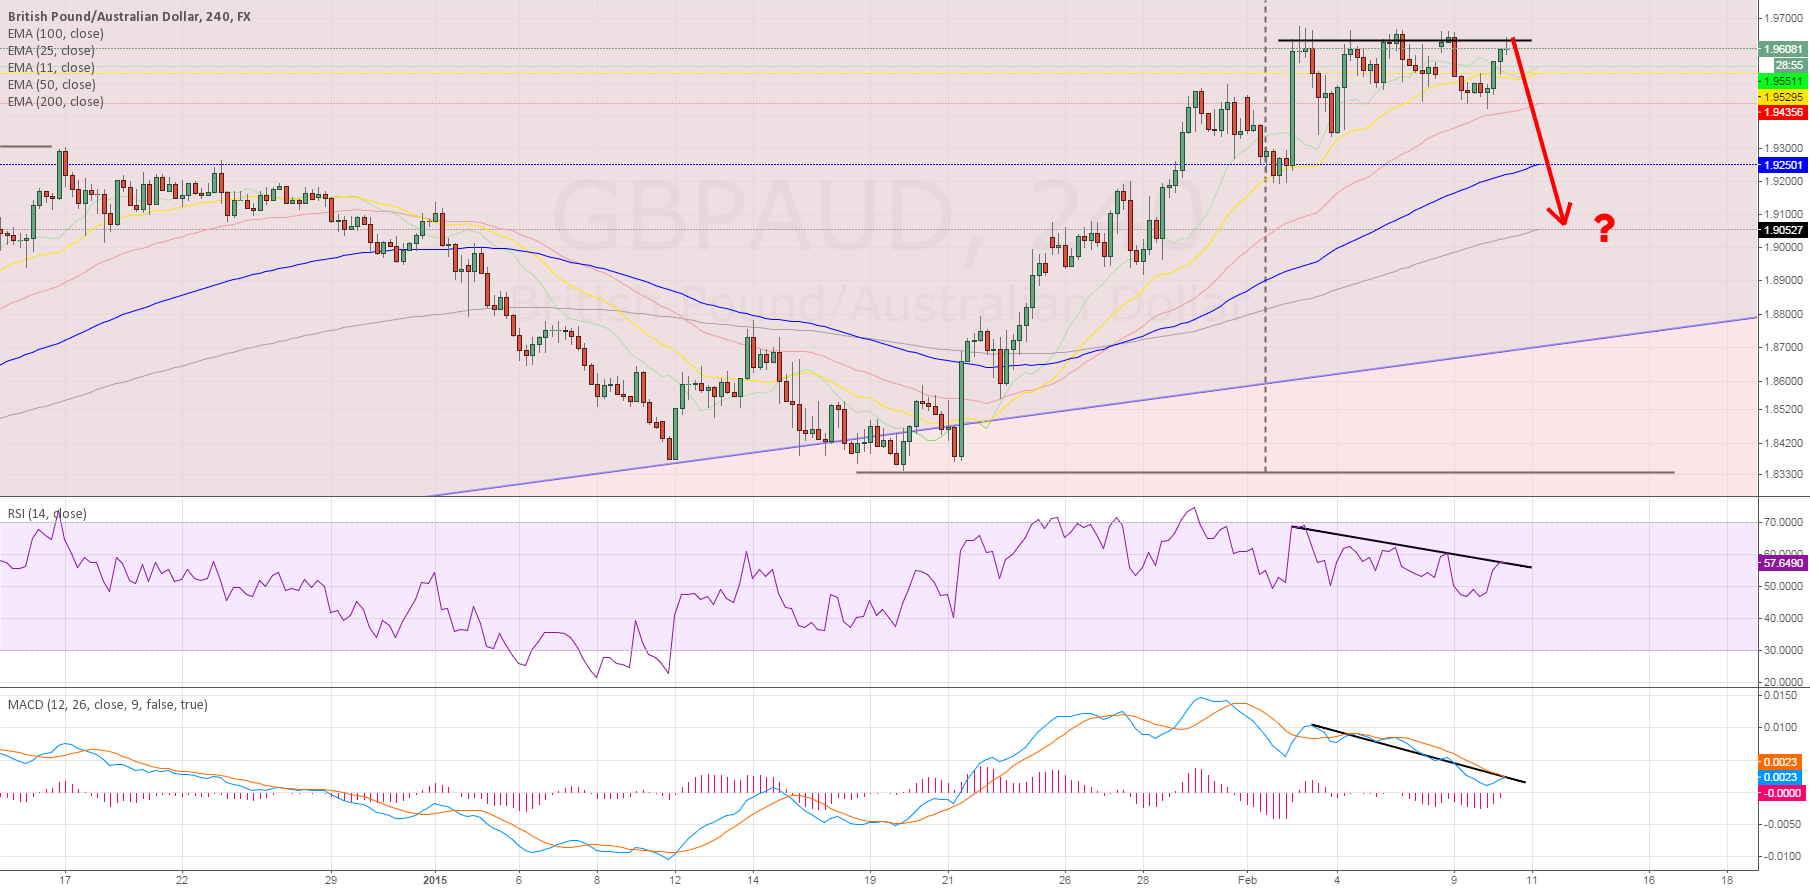 GBPAUD Divergence?